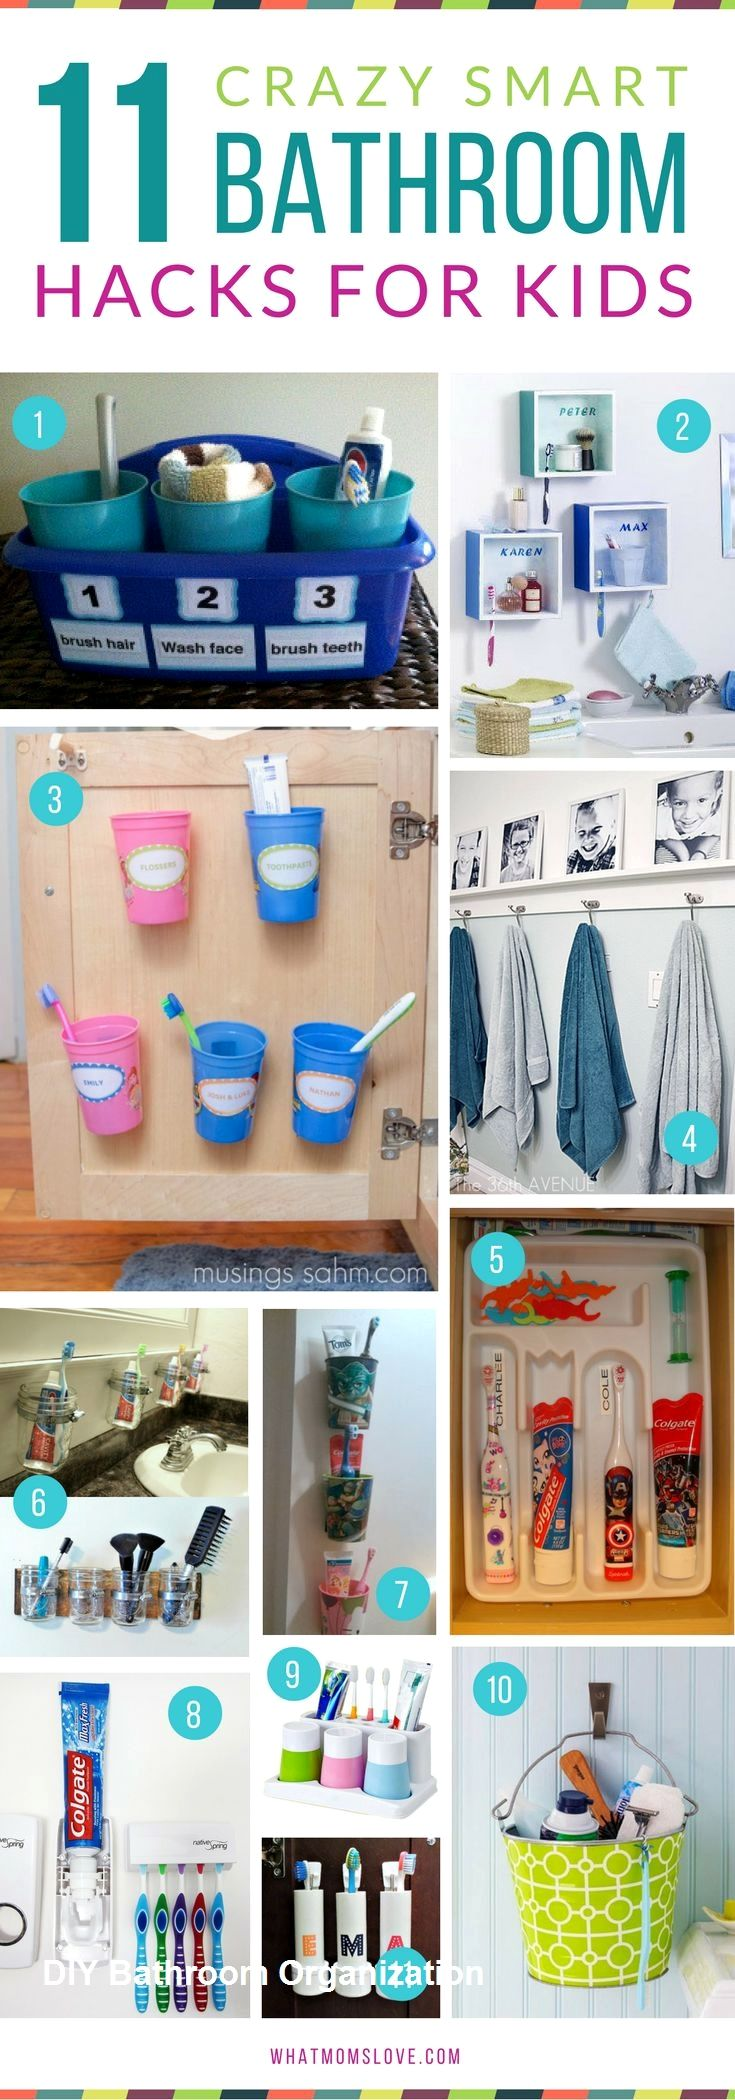 Diy Bathroom Organization Ideas